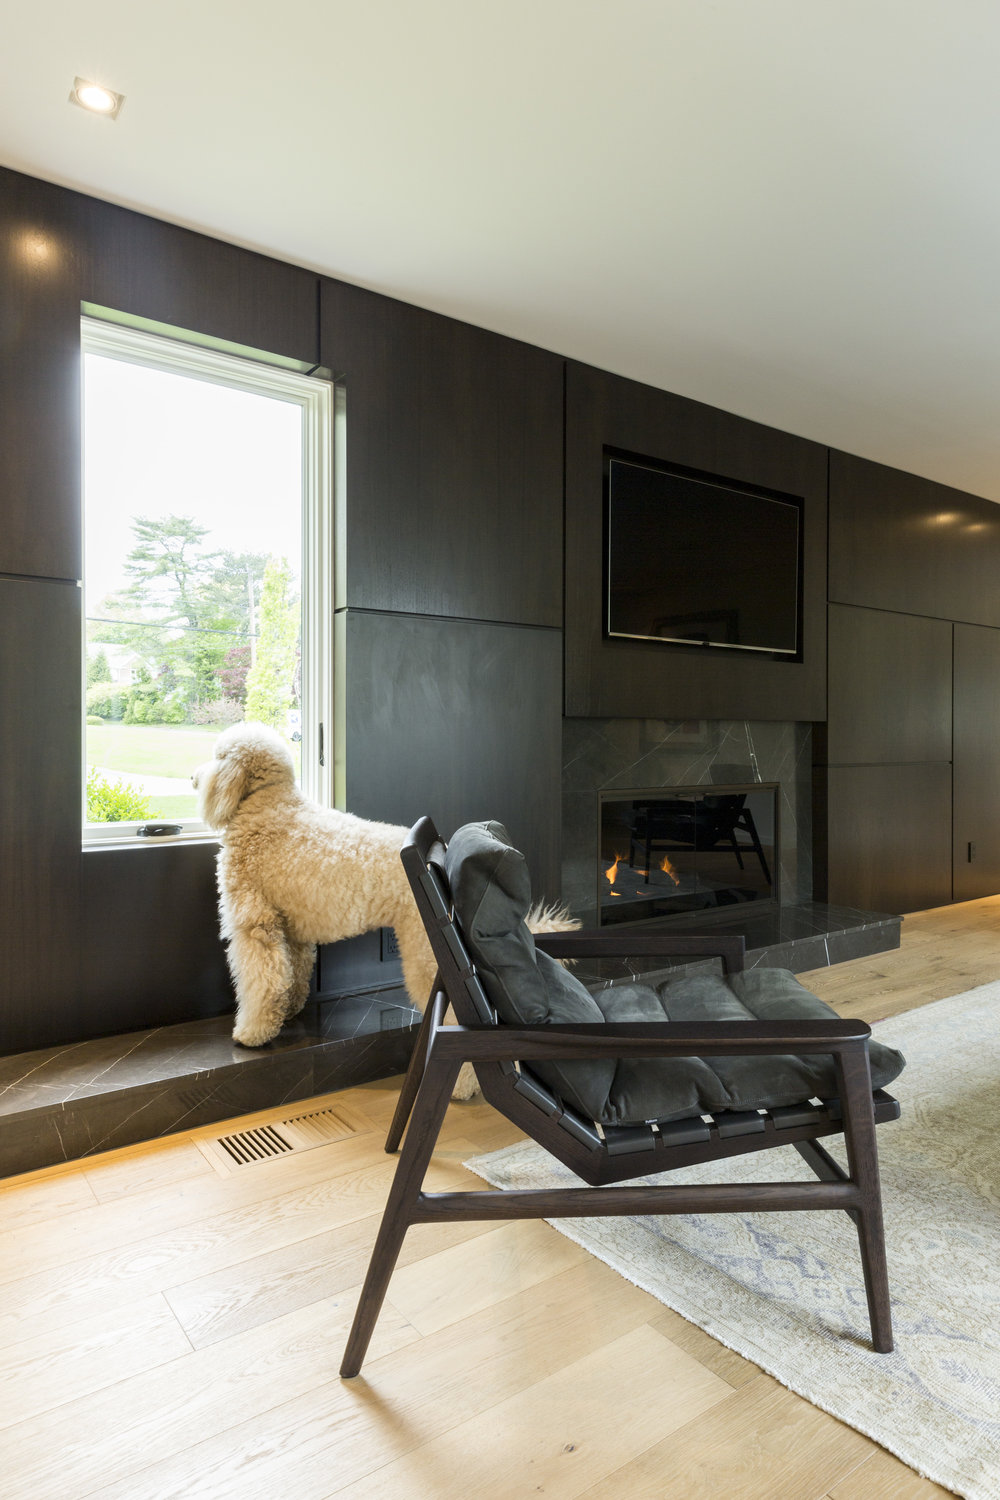 Dark colors and a structural design come together perfectly in this modern living area.